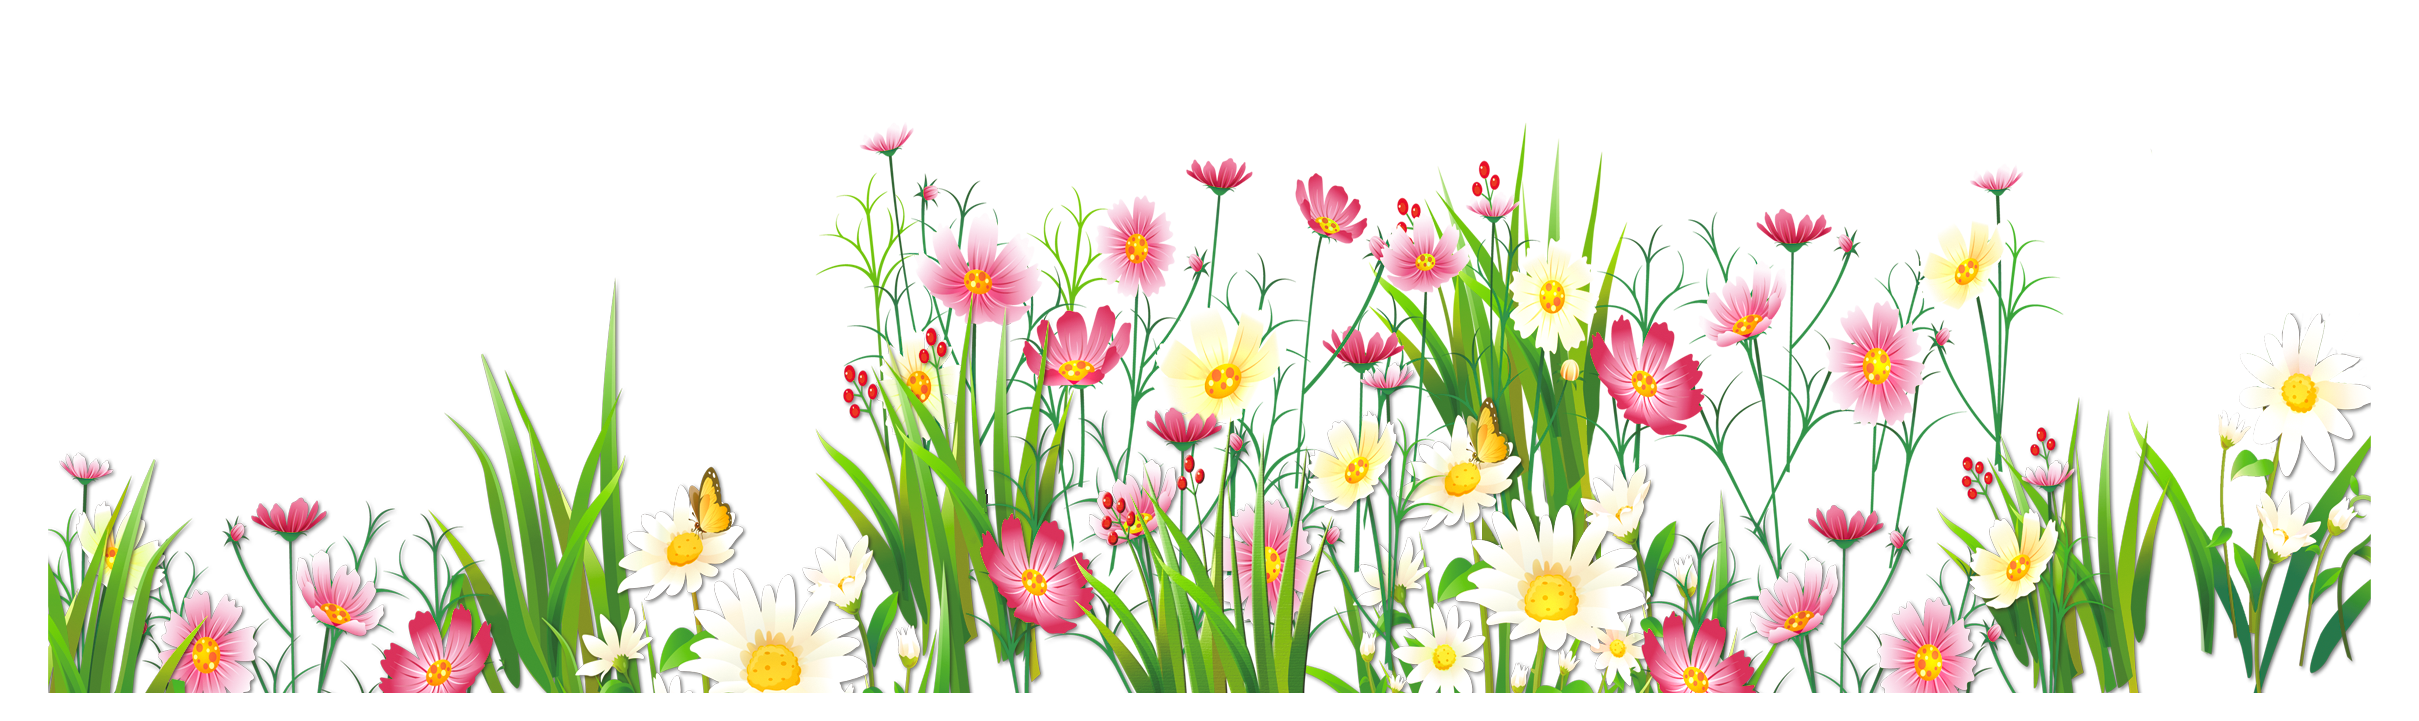 Flower garden png. Flowers and grass picture